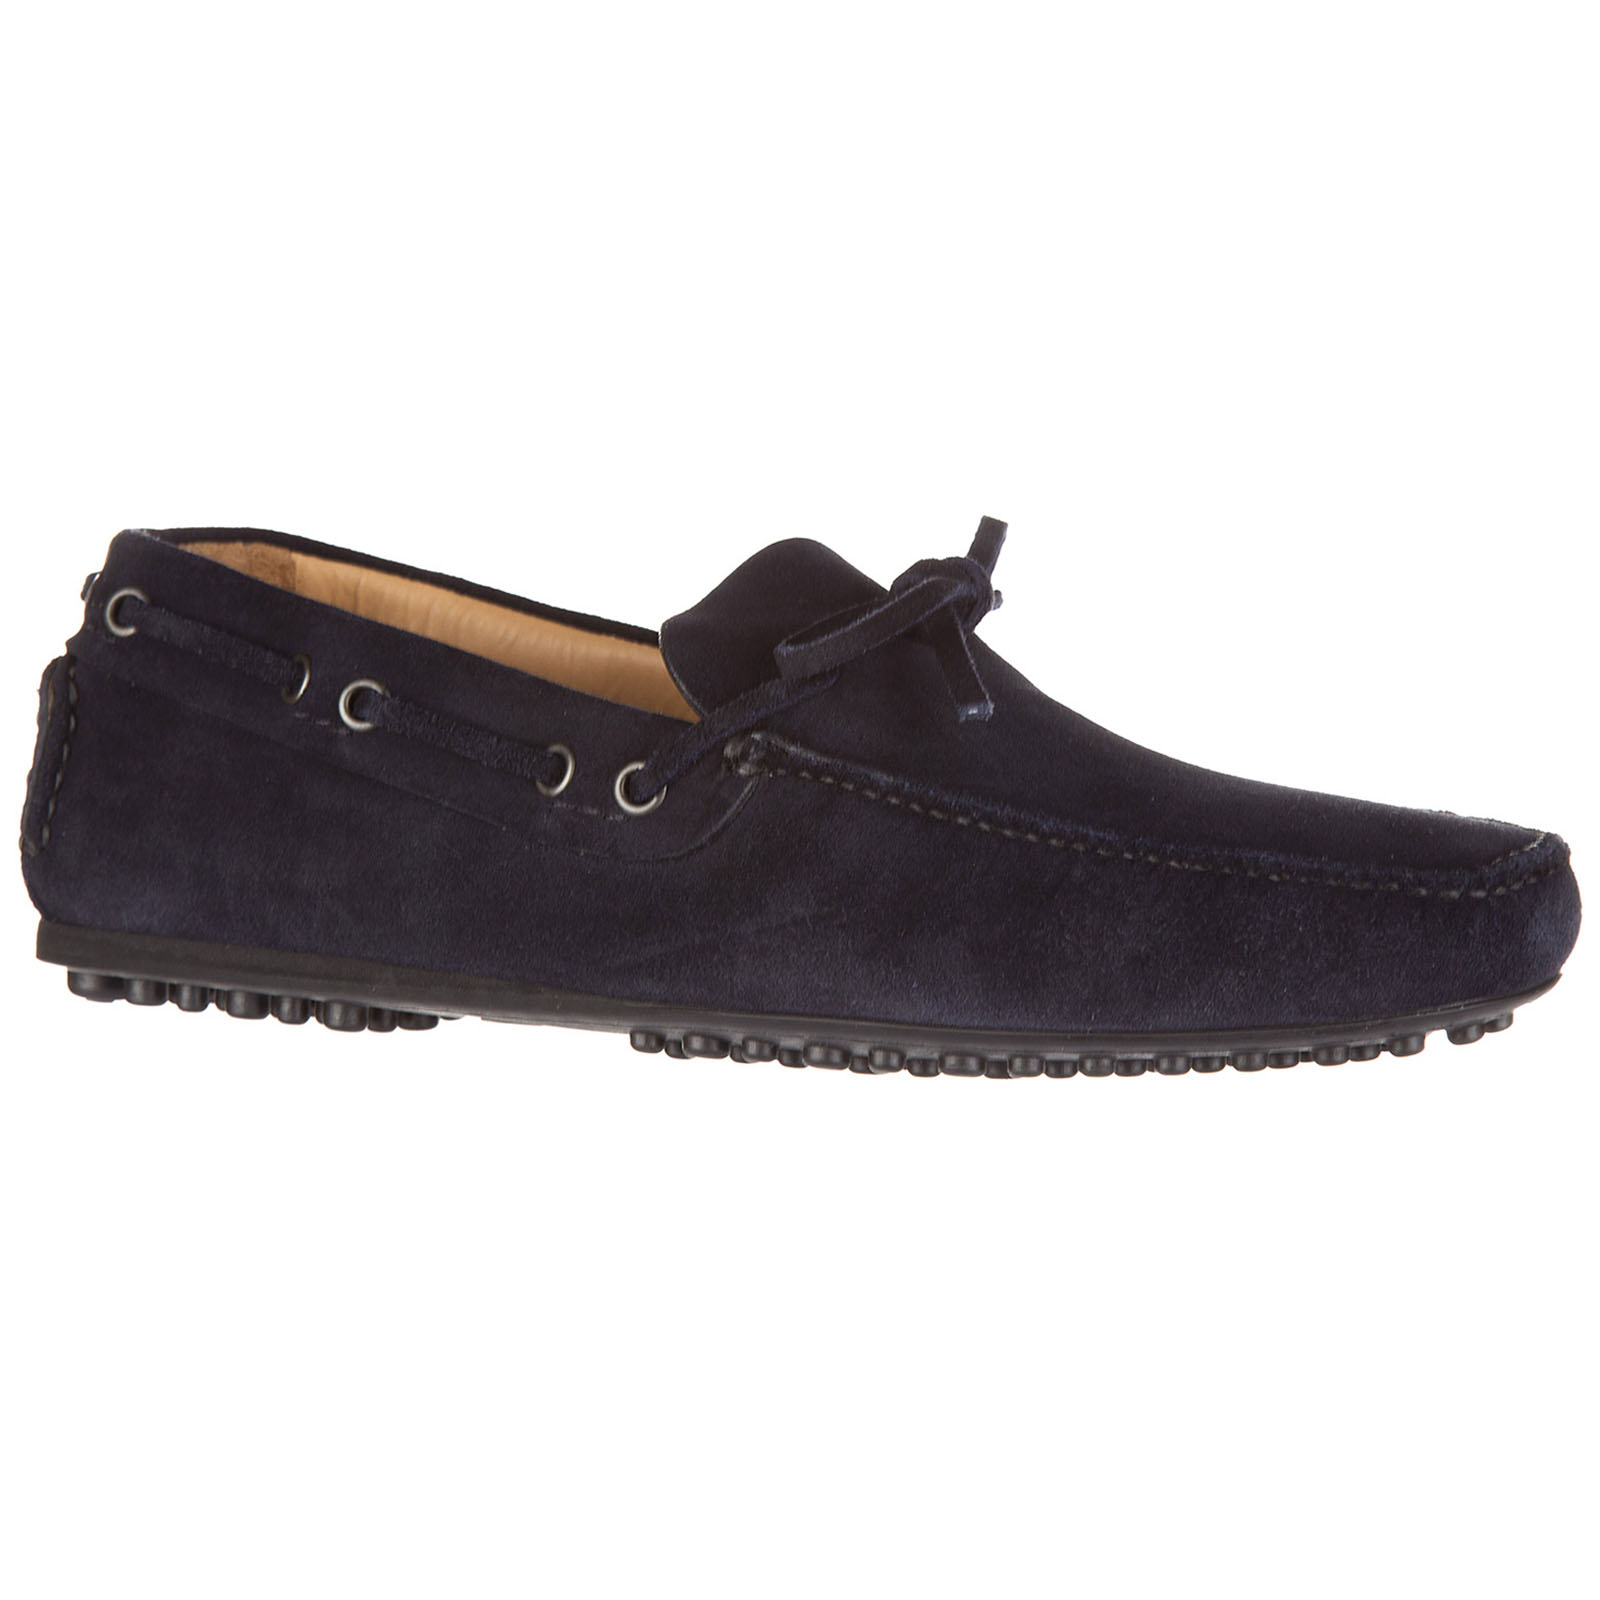 Men's suede loafers moccasins